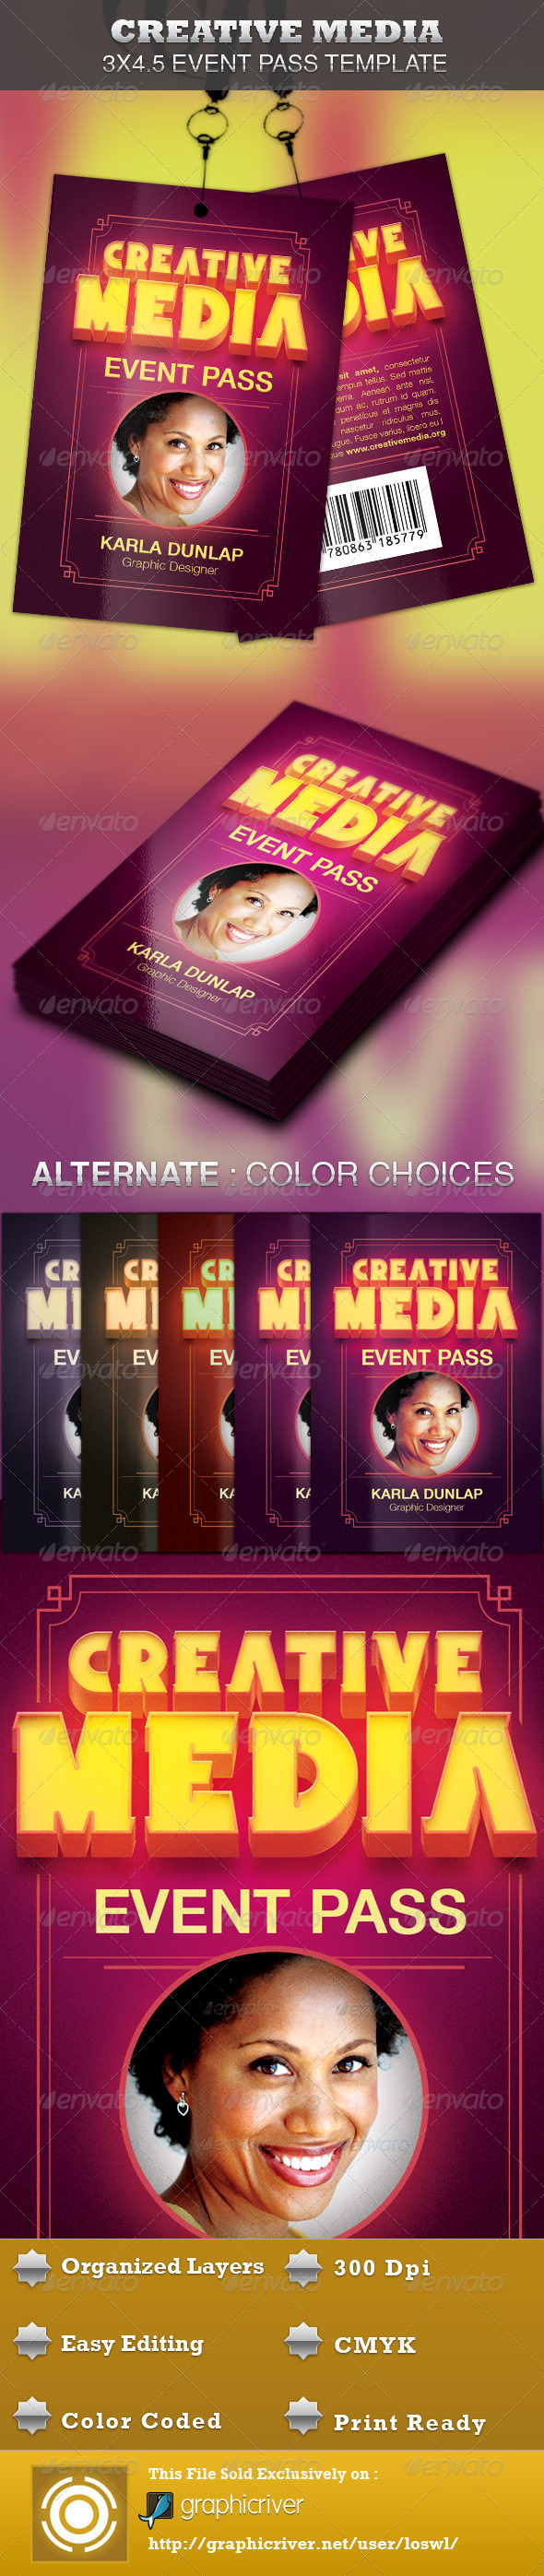 GraphicRiver Creative Media Event Pass Template 4374209